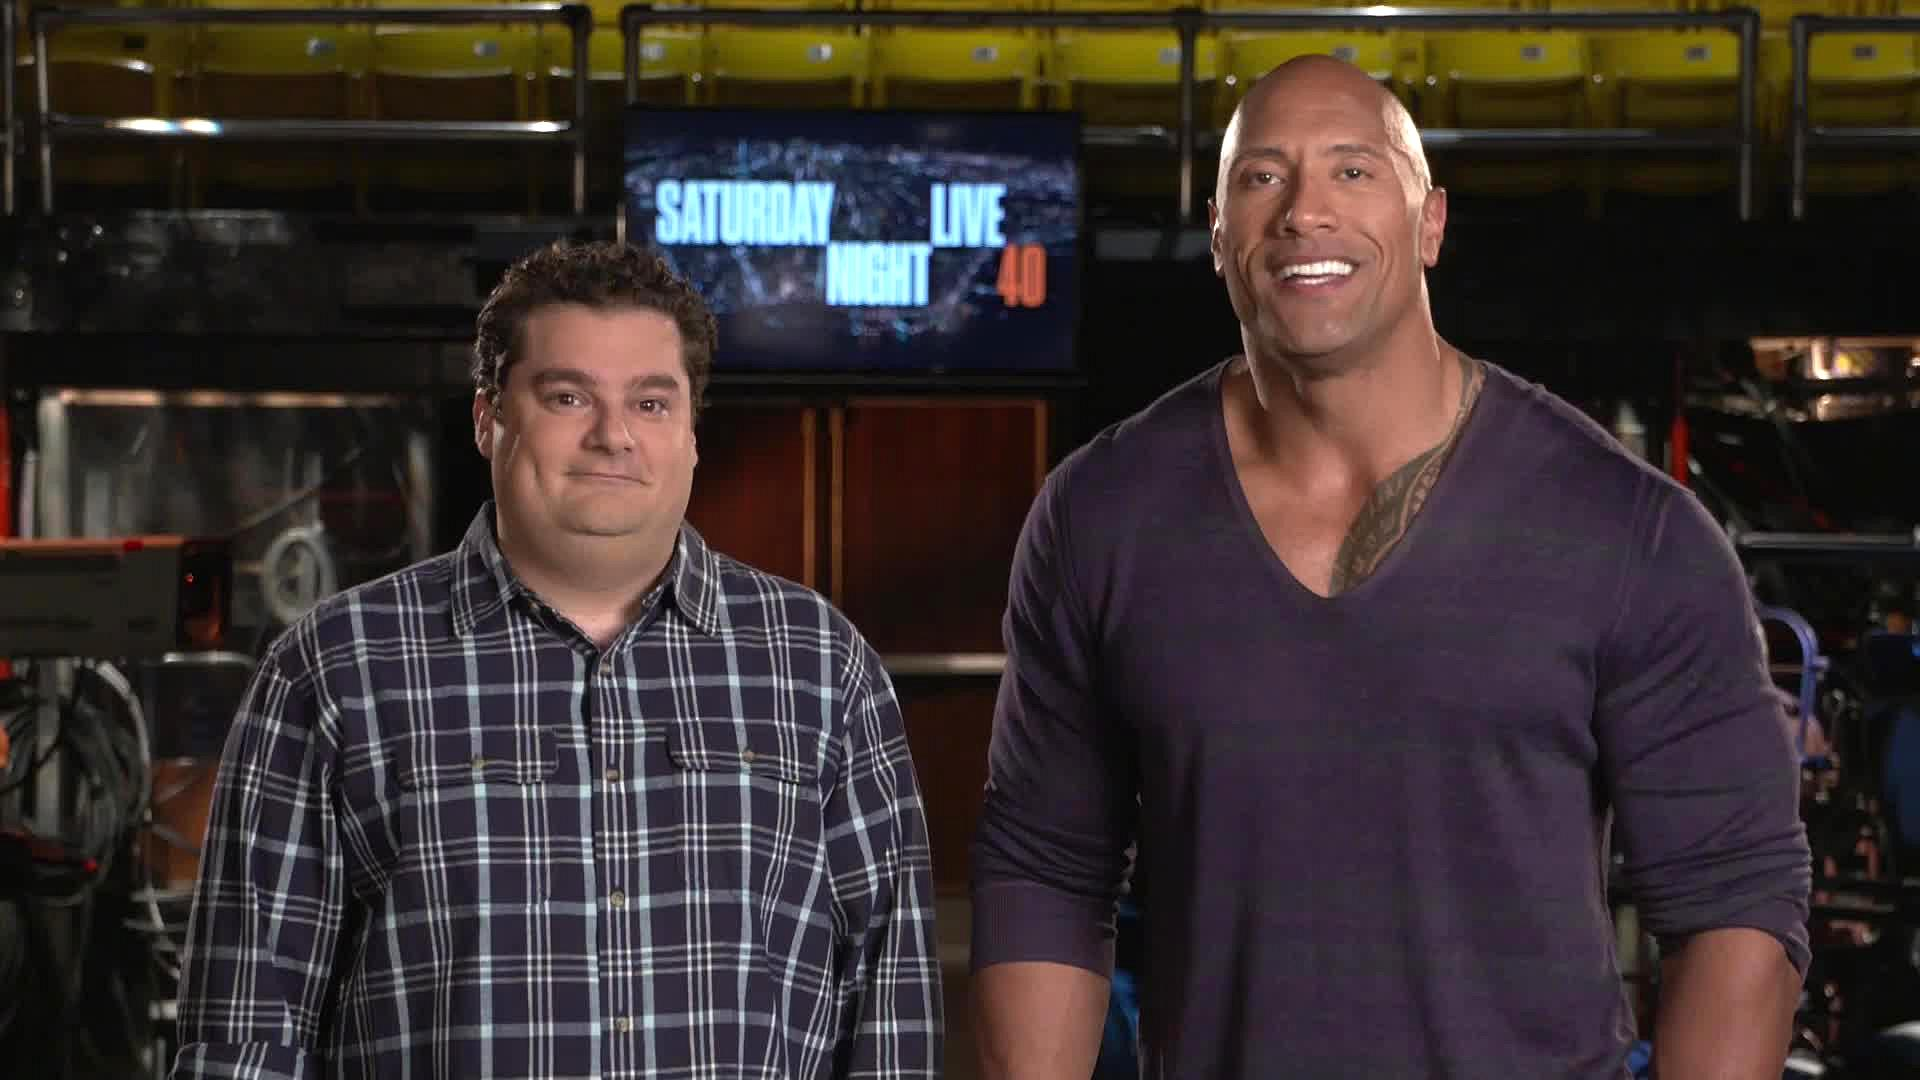 'Saturday Night Live' With Host Dwayne Johnson Slips To Season Low